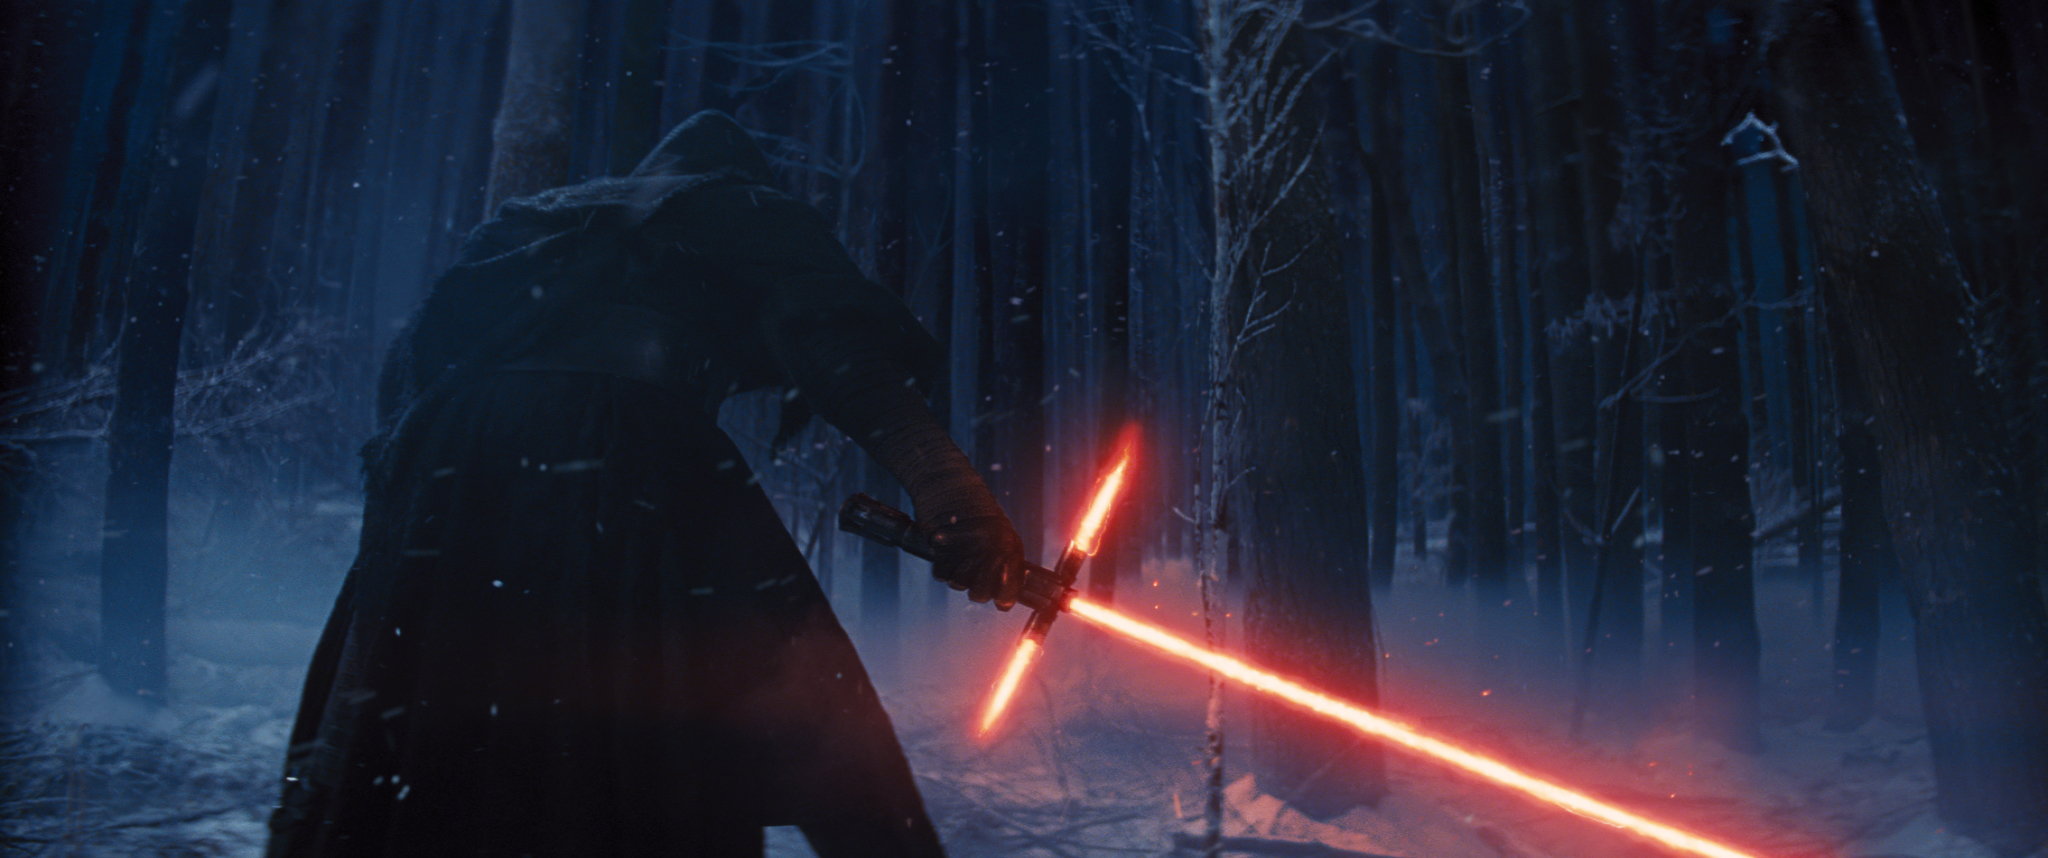 WATCH: Star Wars fans go crazy after faulty projector ruins ending of The Force Awakens